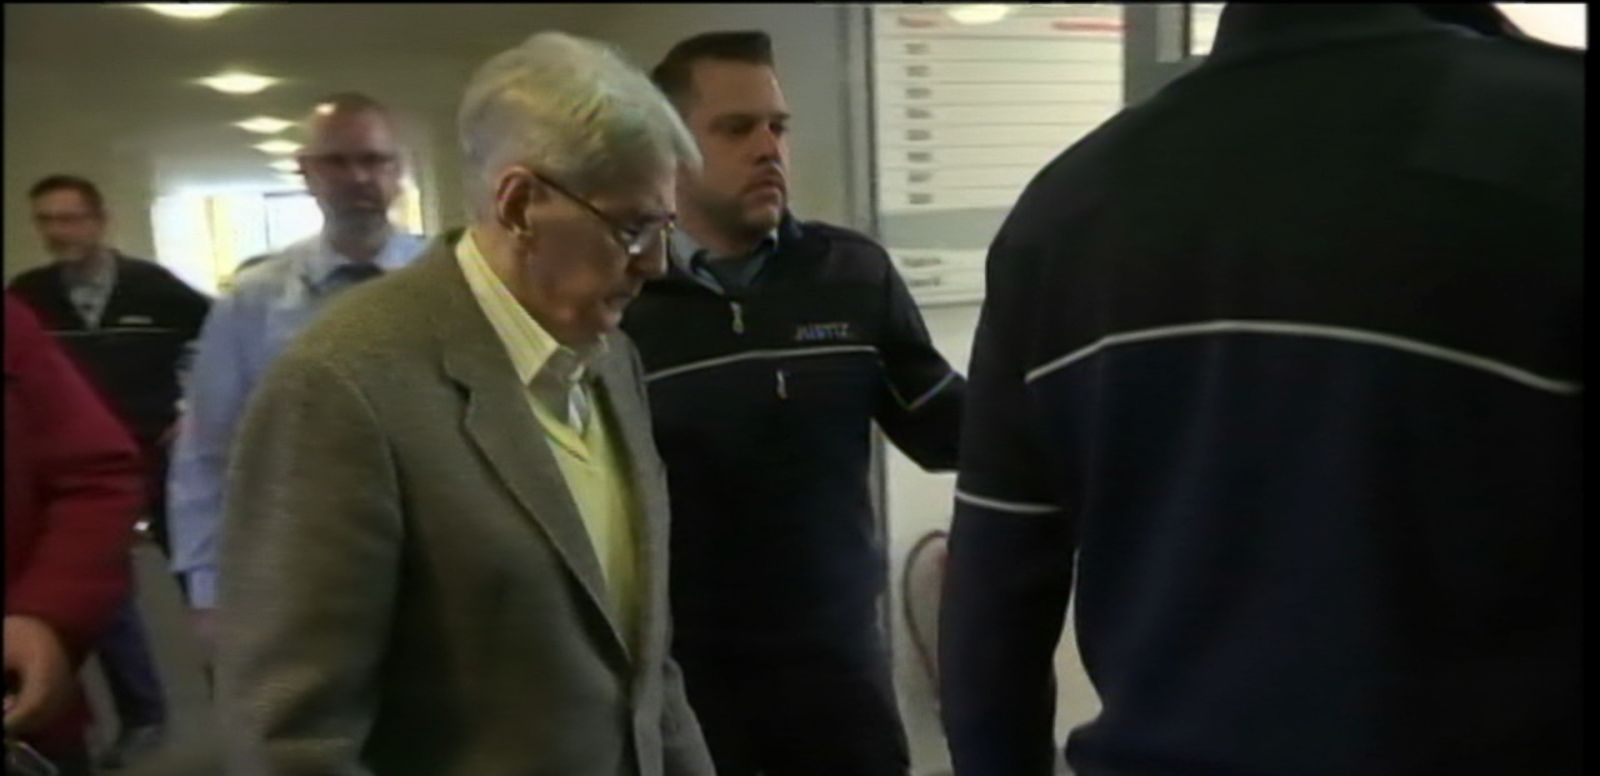 VIDEO: Reinhold Manning has been charged with being an accessory to 170,000 murders at the Auschwitz concentration camp.